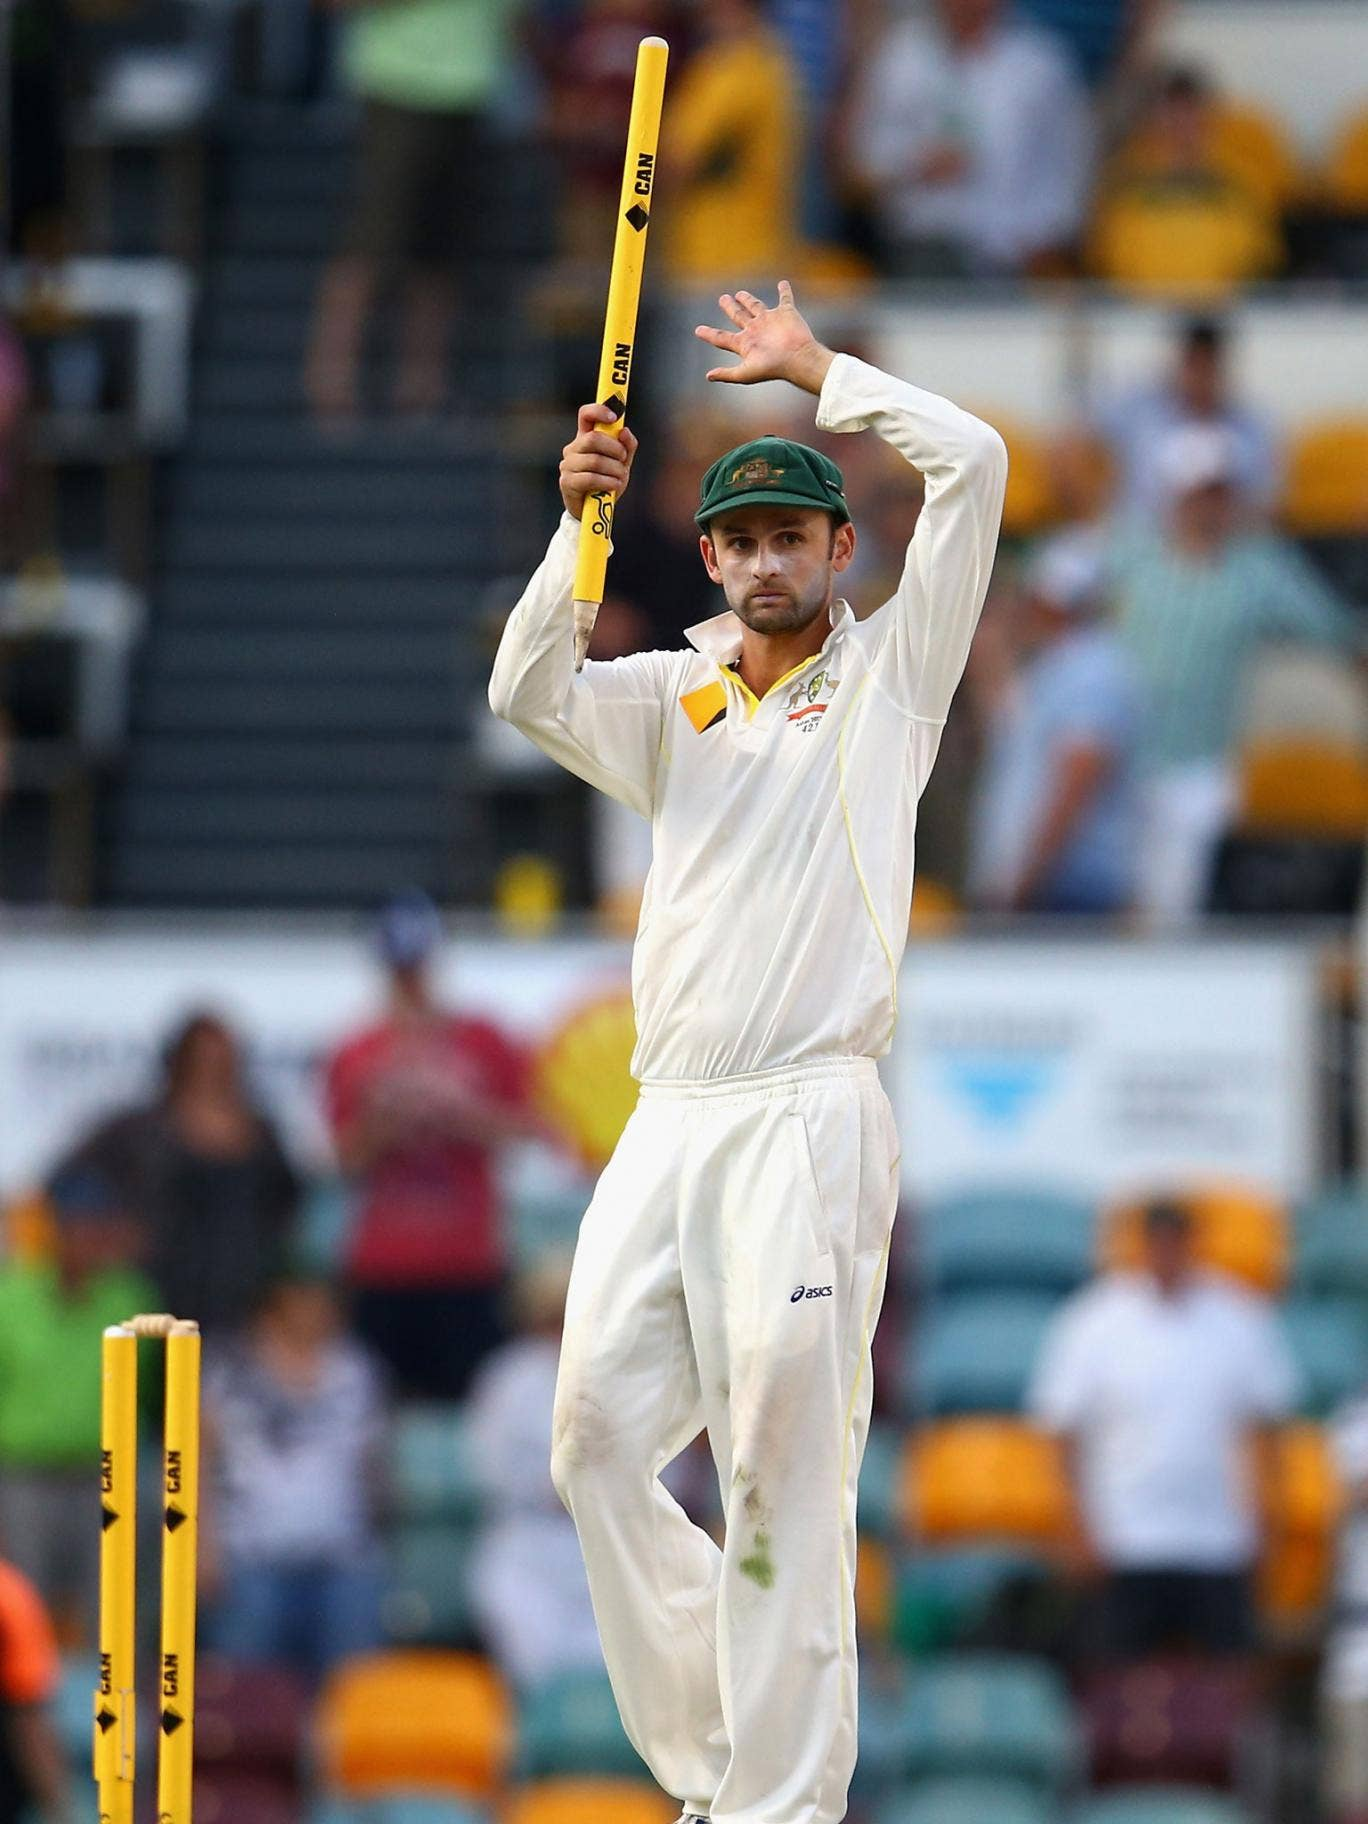 Nathan Lyon claims the spoils of victory at The Gabba